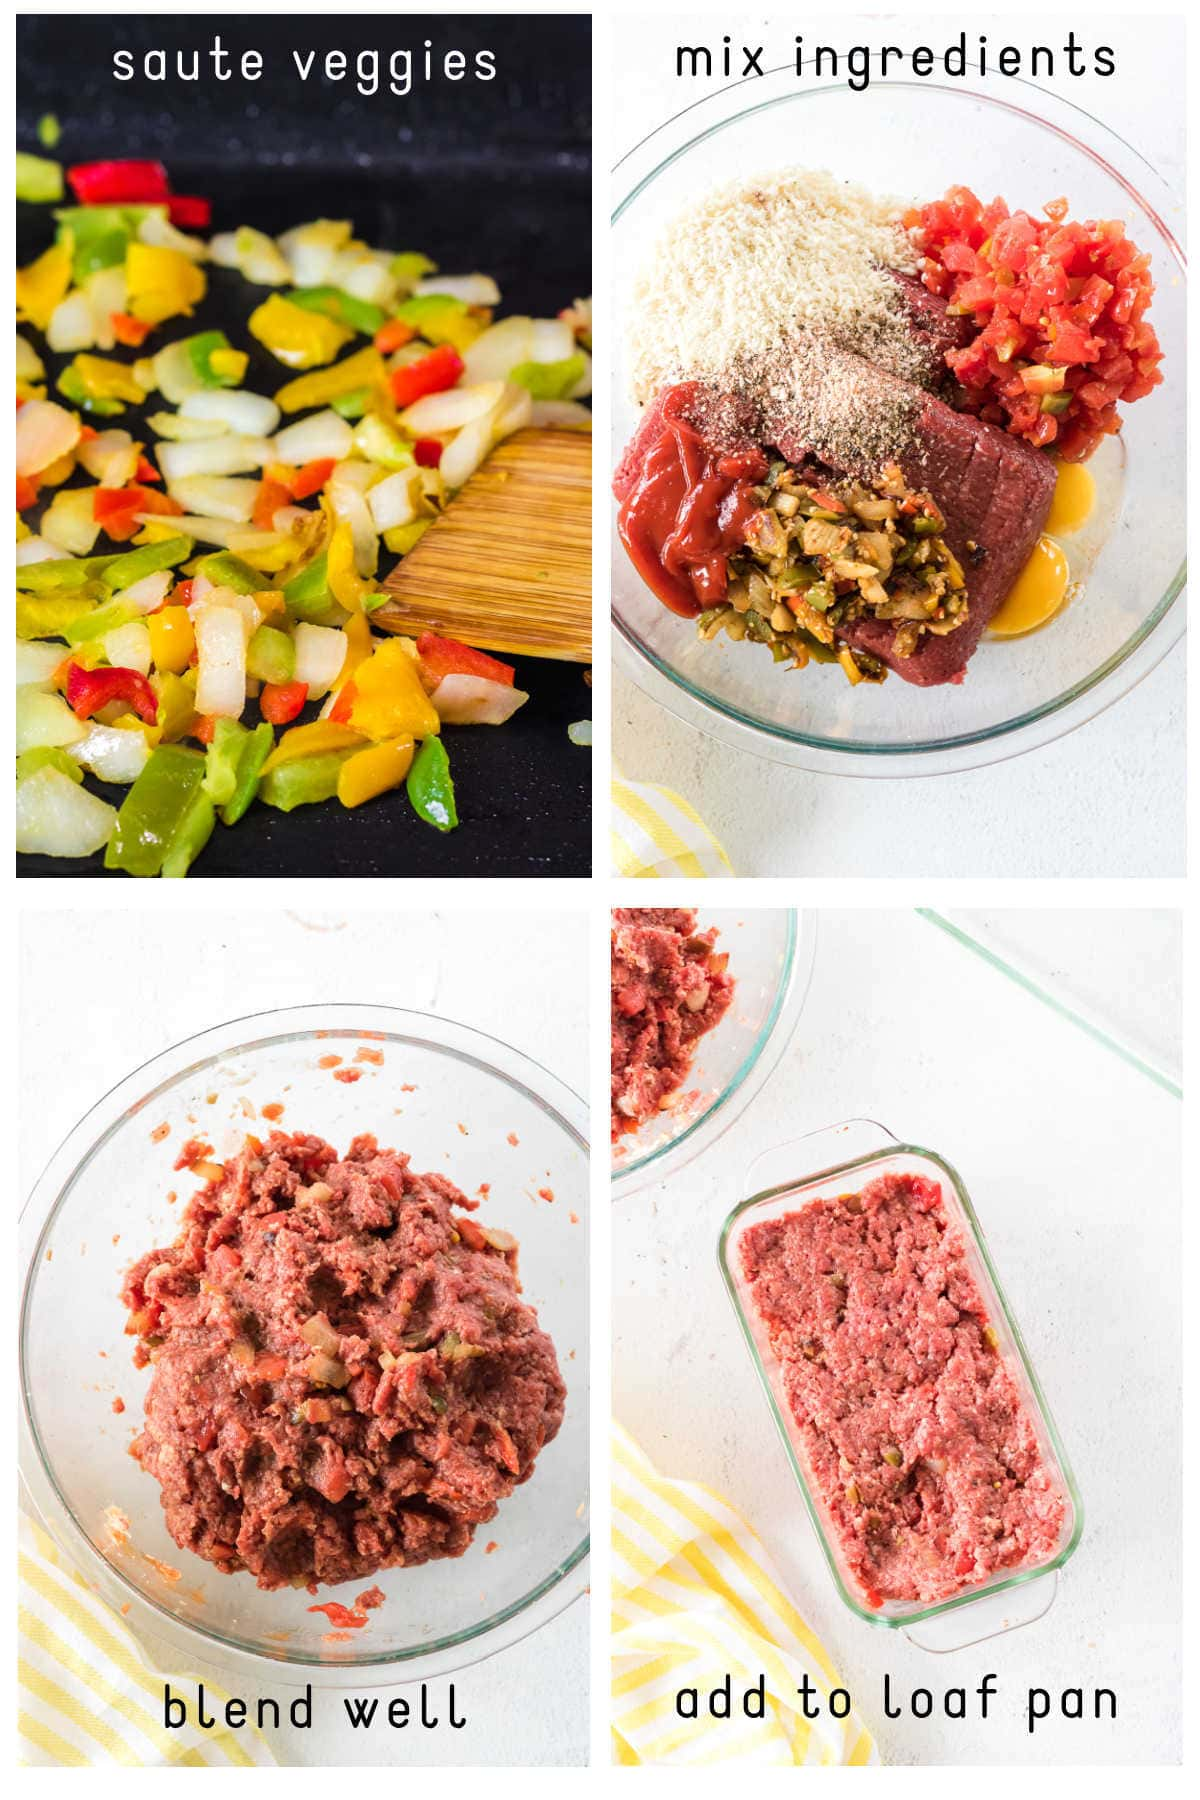 Steps for mixing and forming the meatloaf recipe.